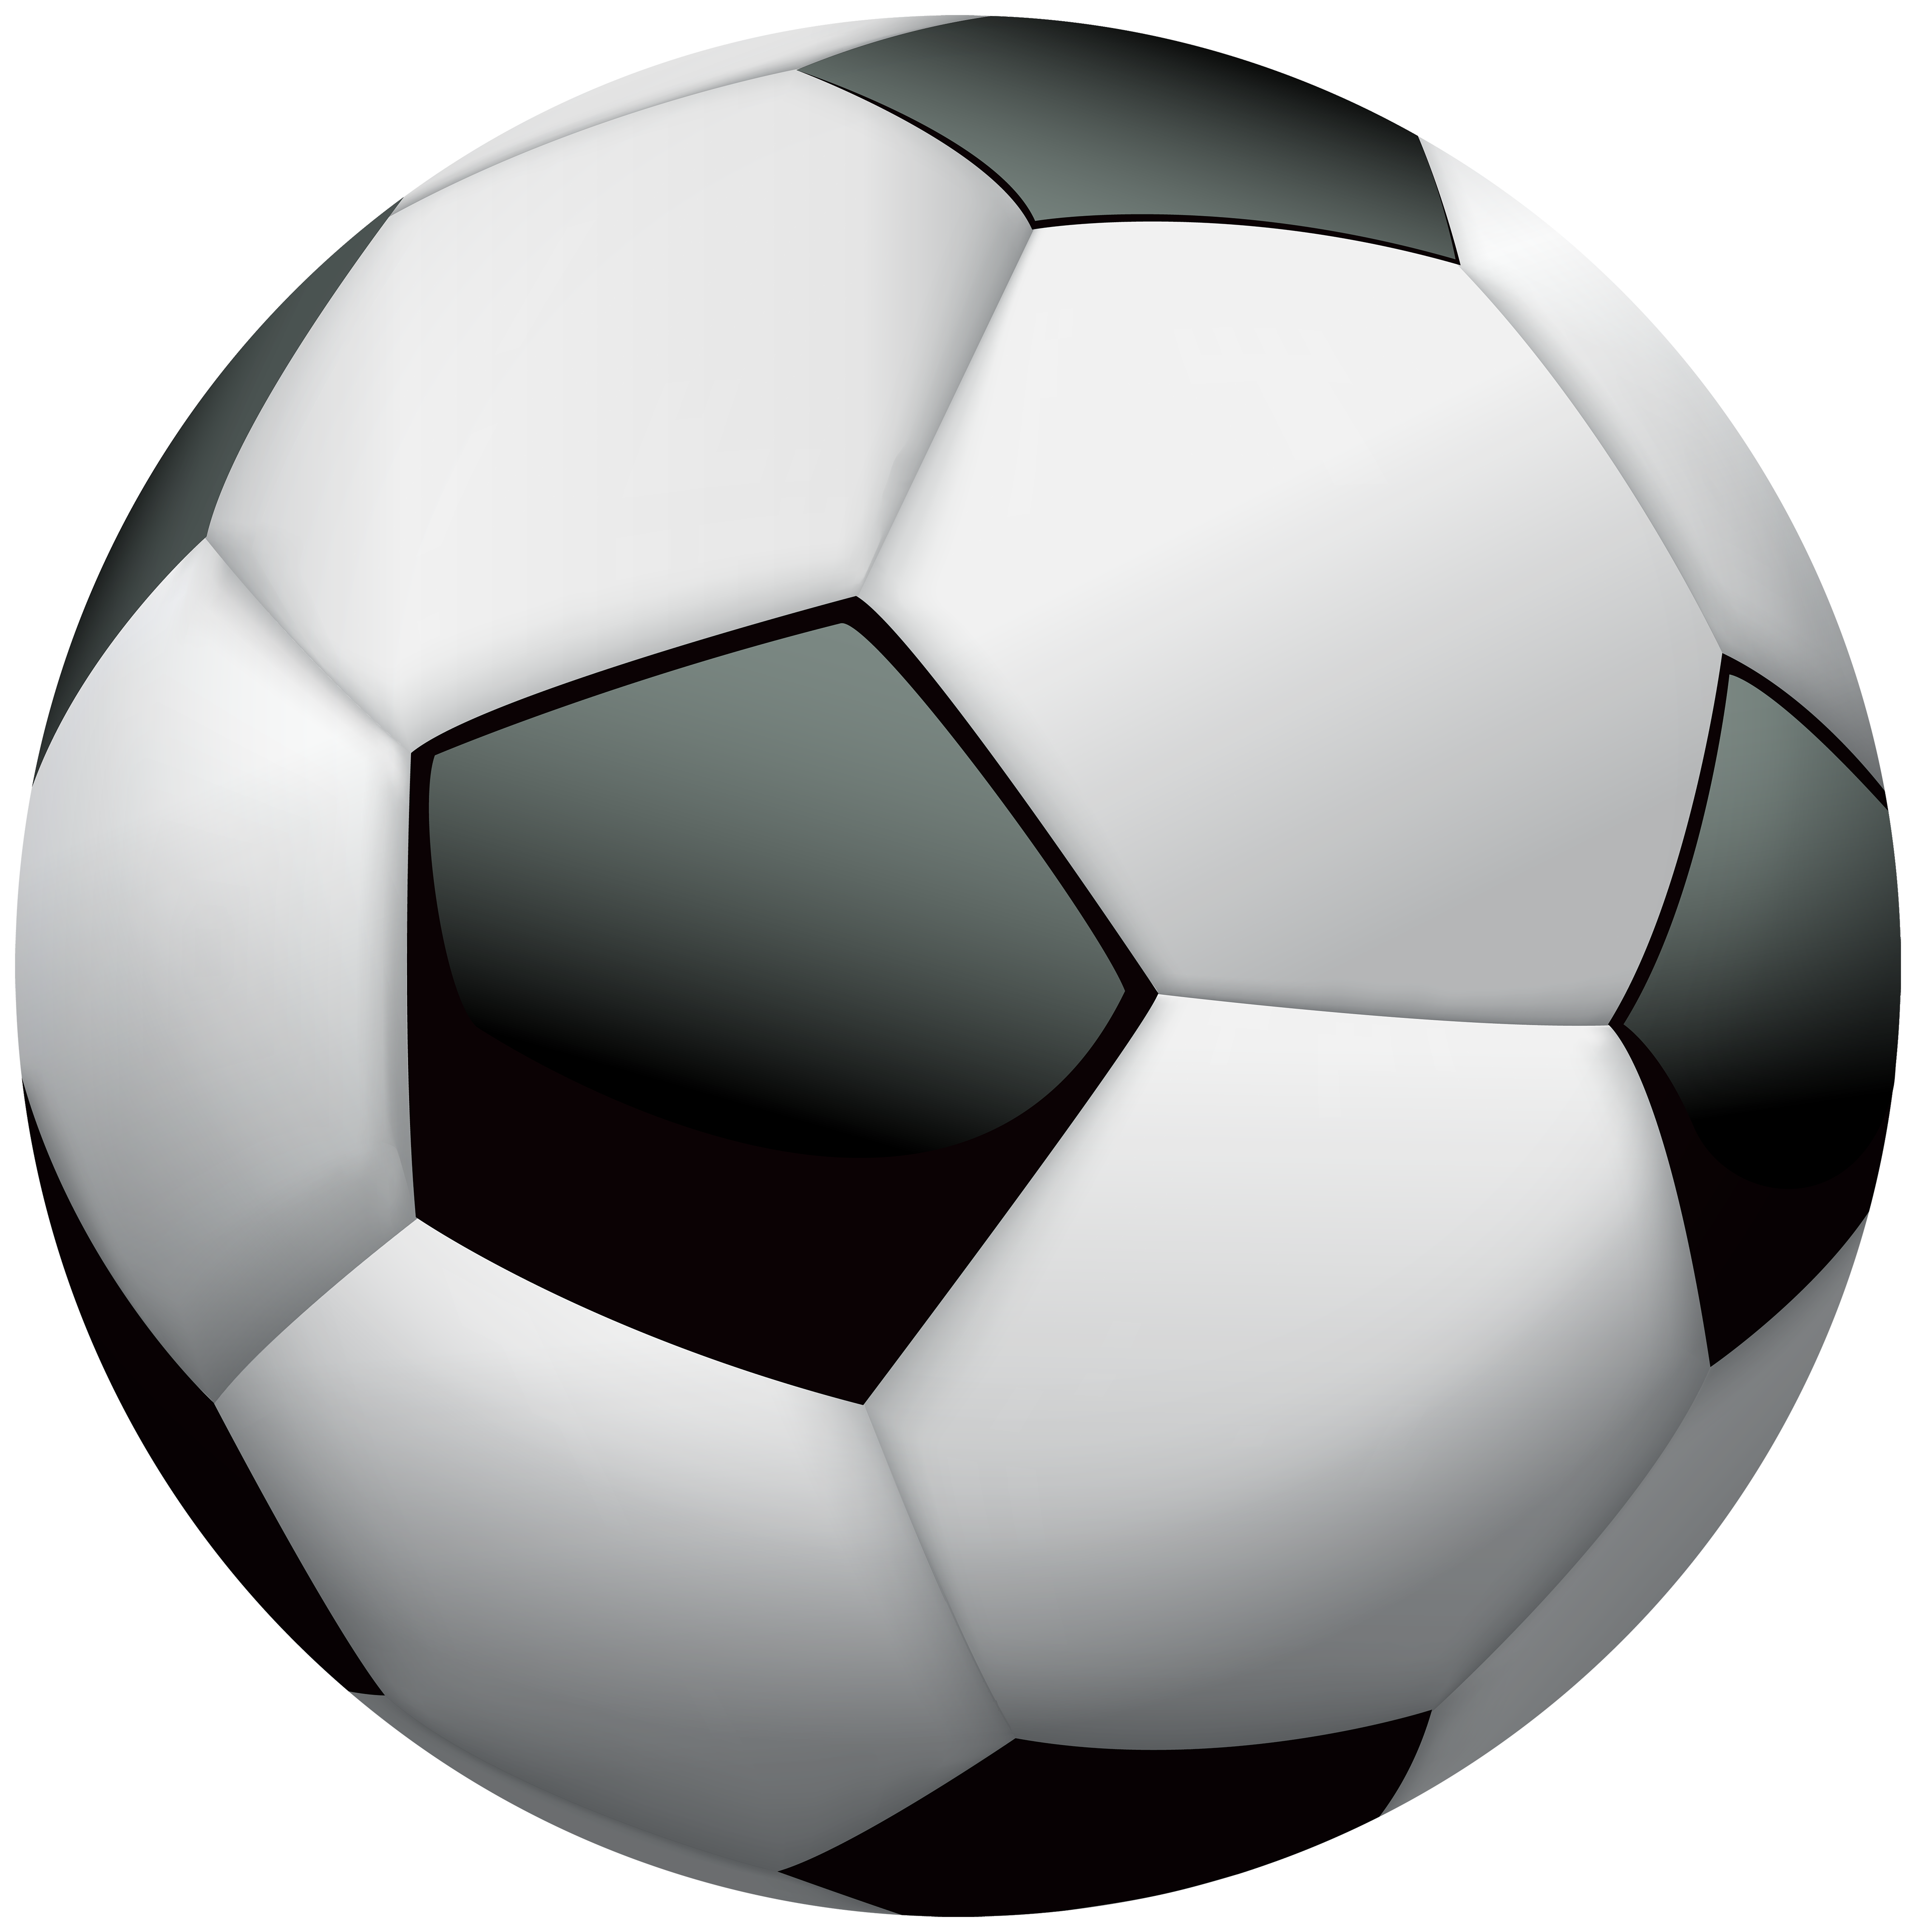 Ball clipart soccor. Soccer png best web